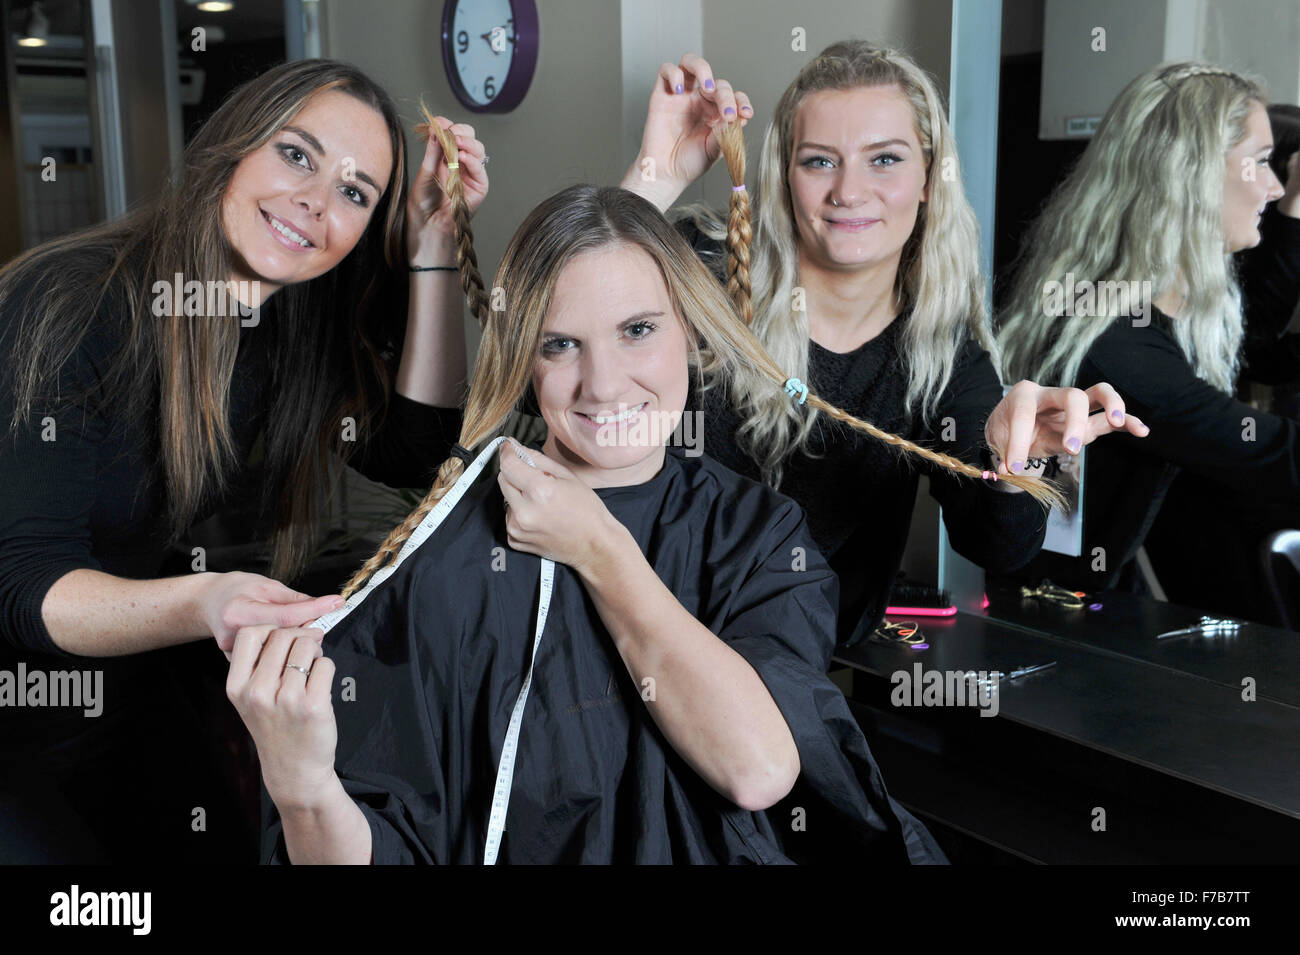 Young woman having her hair cut off for charity by hairdressers at